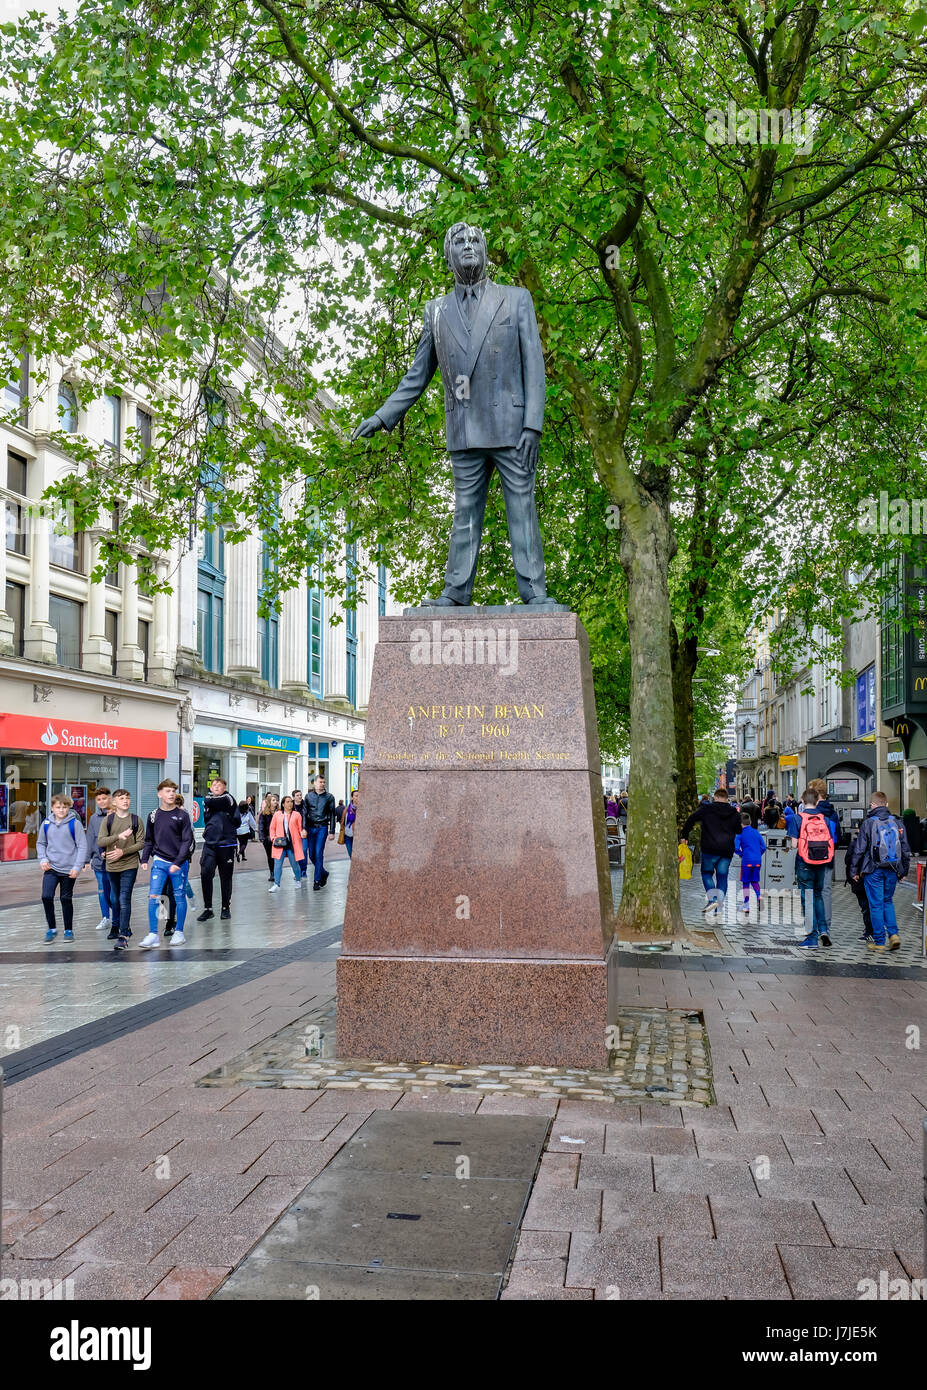 Cardiff, Wales - May 20, 2017: Statue of Nye  Bevan, Founder of the National Health, NHS - Stock Image